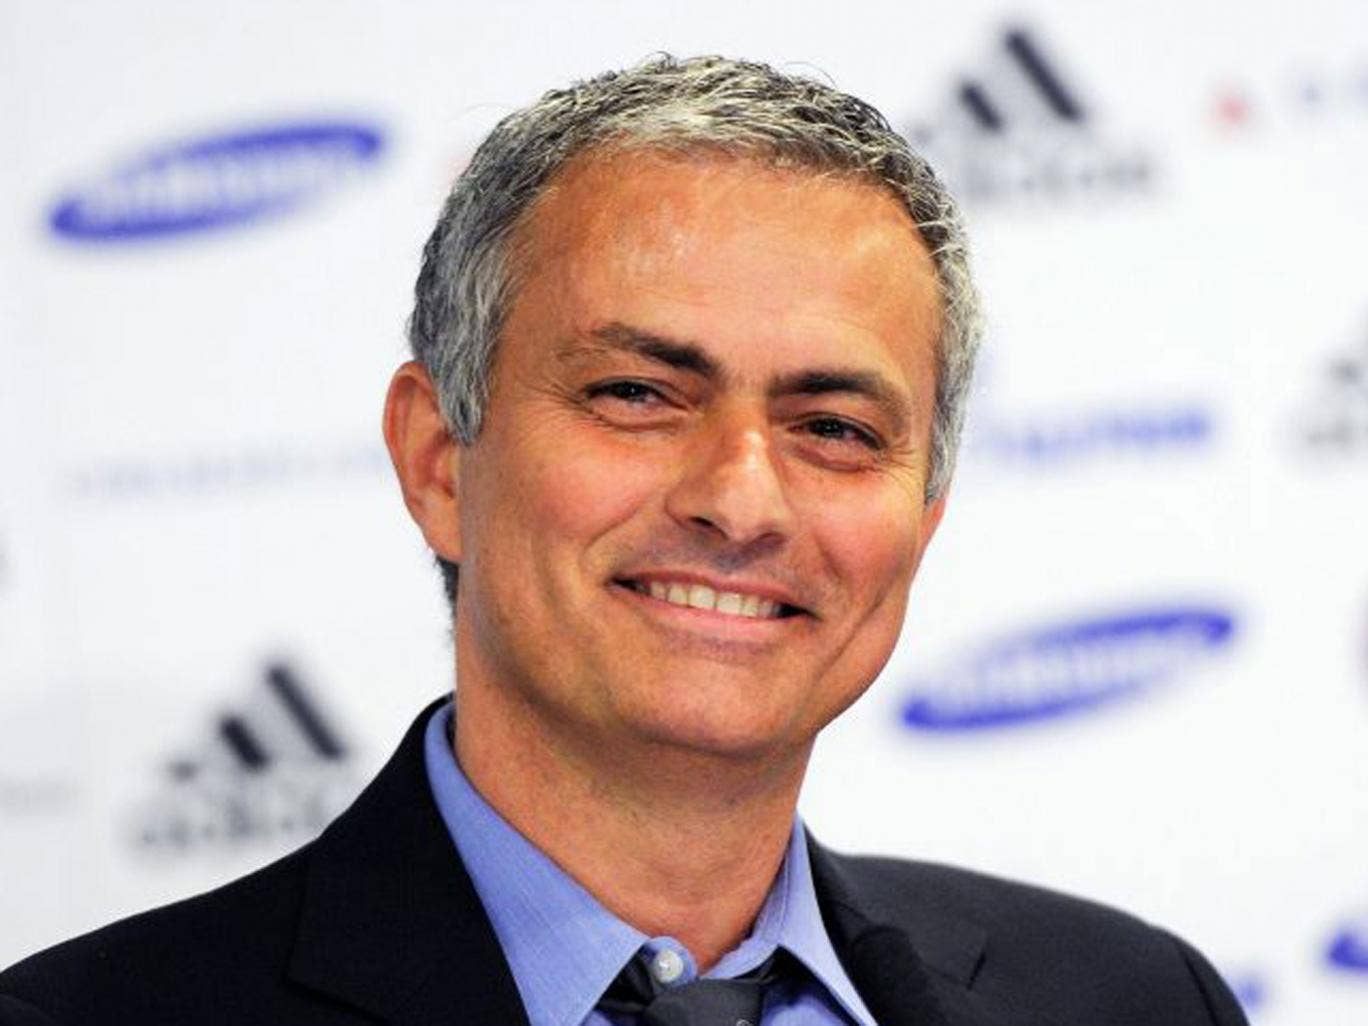 Jose Mourinho was wise to reinvent himself as 'the happy one'